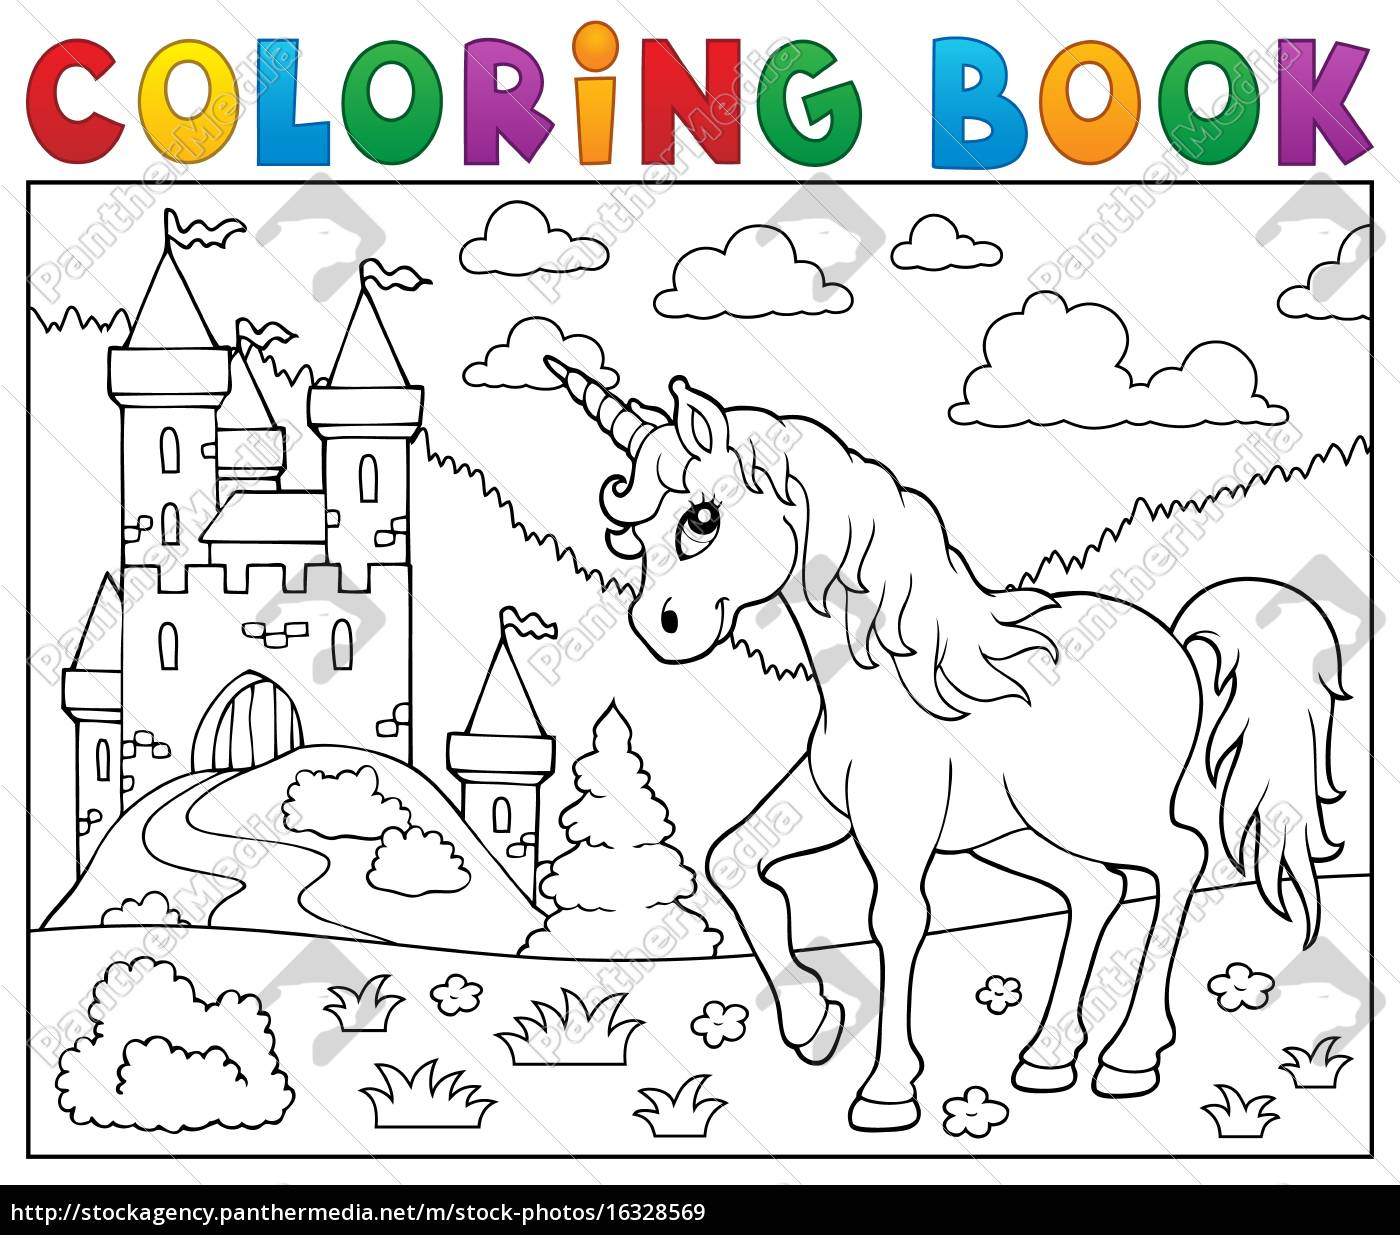 coloring, book, unicorn, near, castle - 16328569